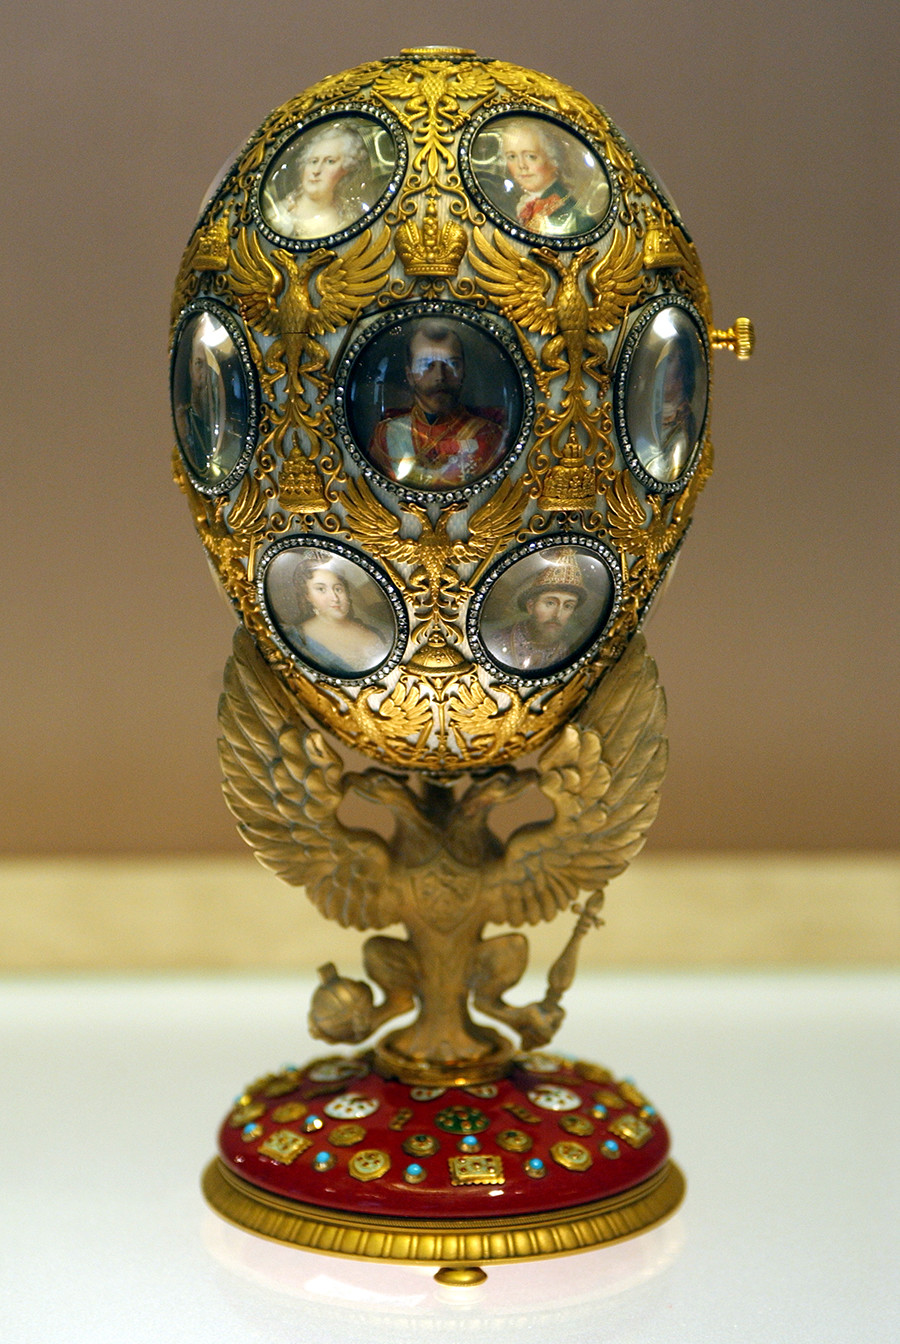 Faberge is renowned for the fabulous jeweled Easter eggs he created for the Russian royal family